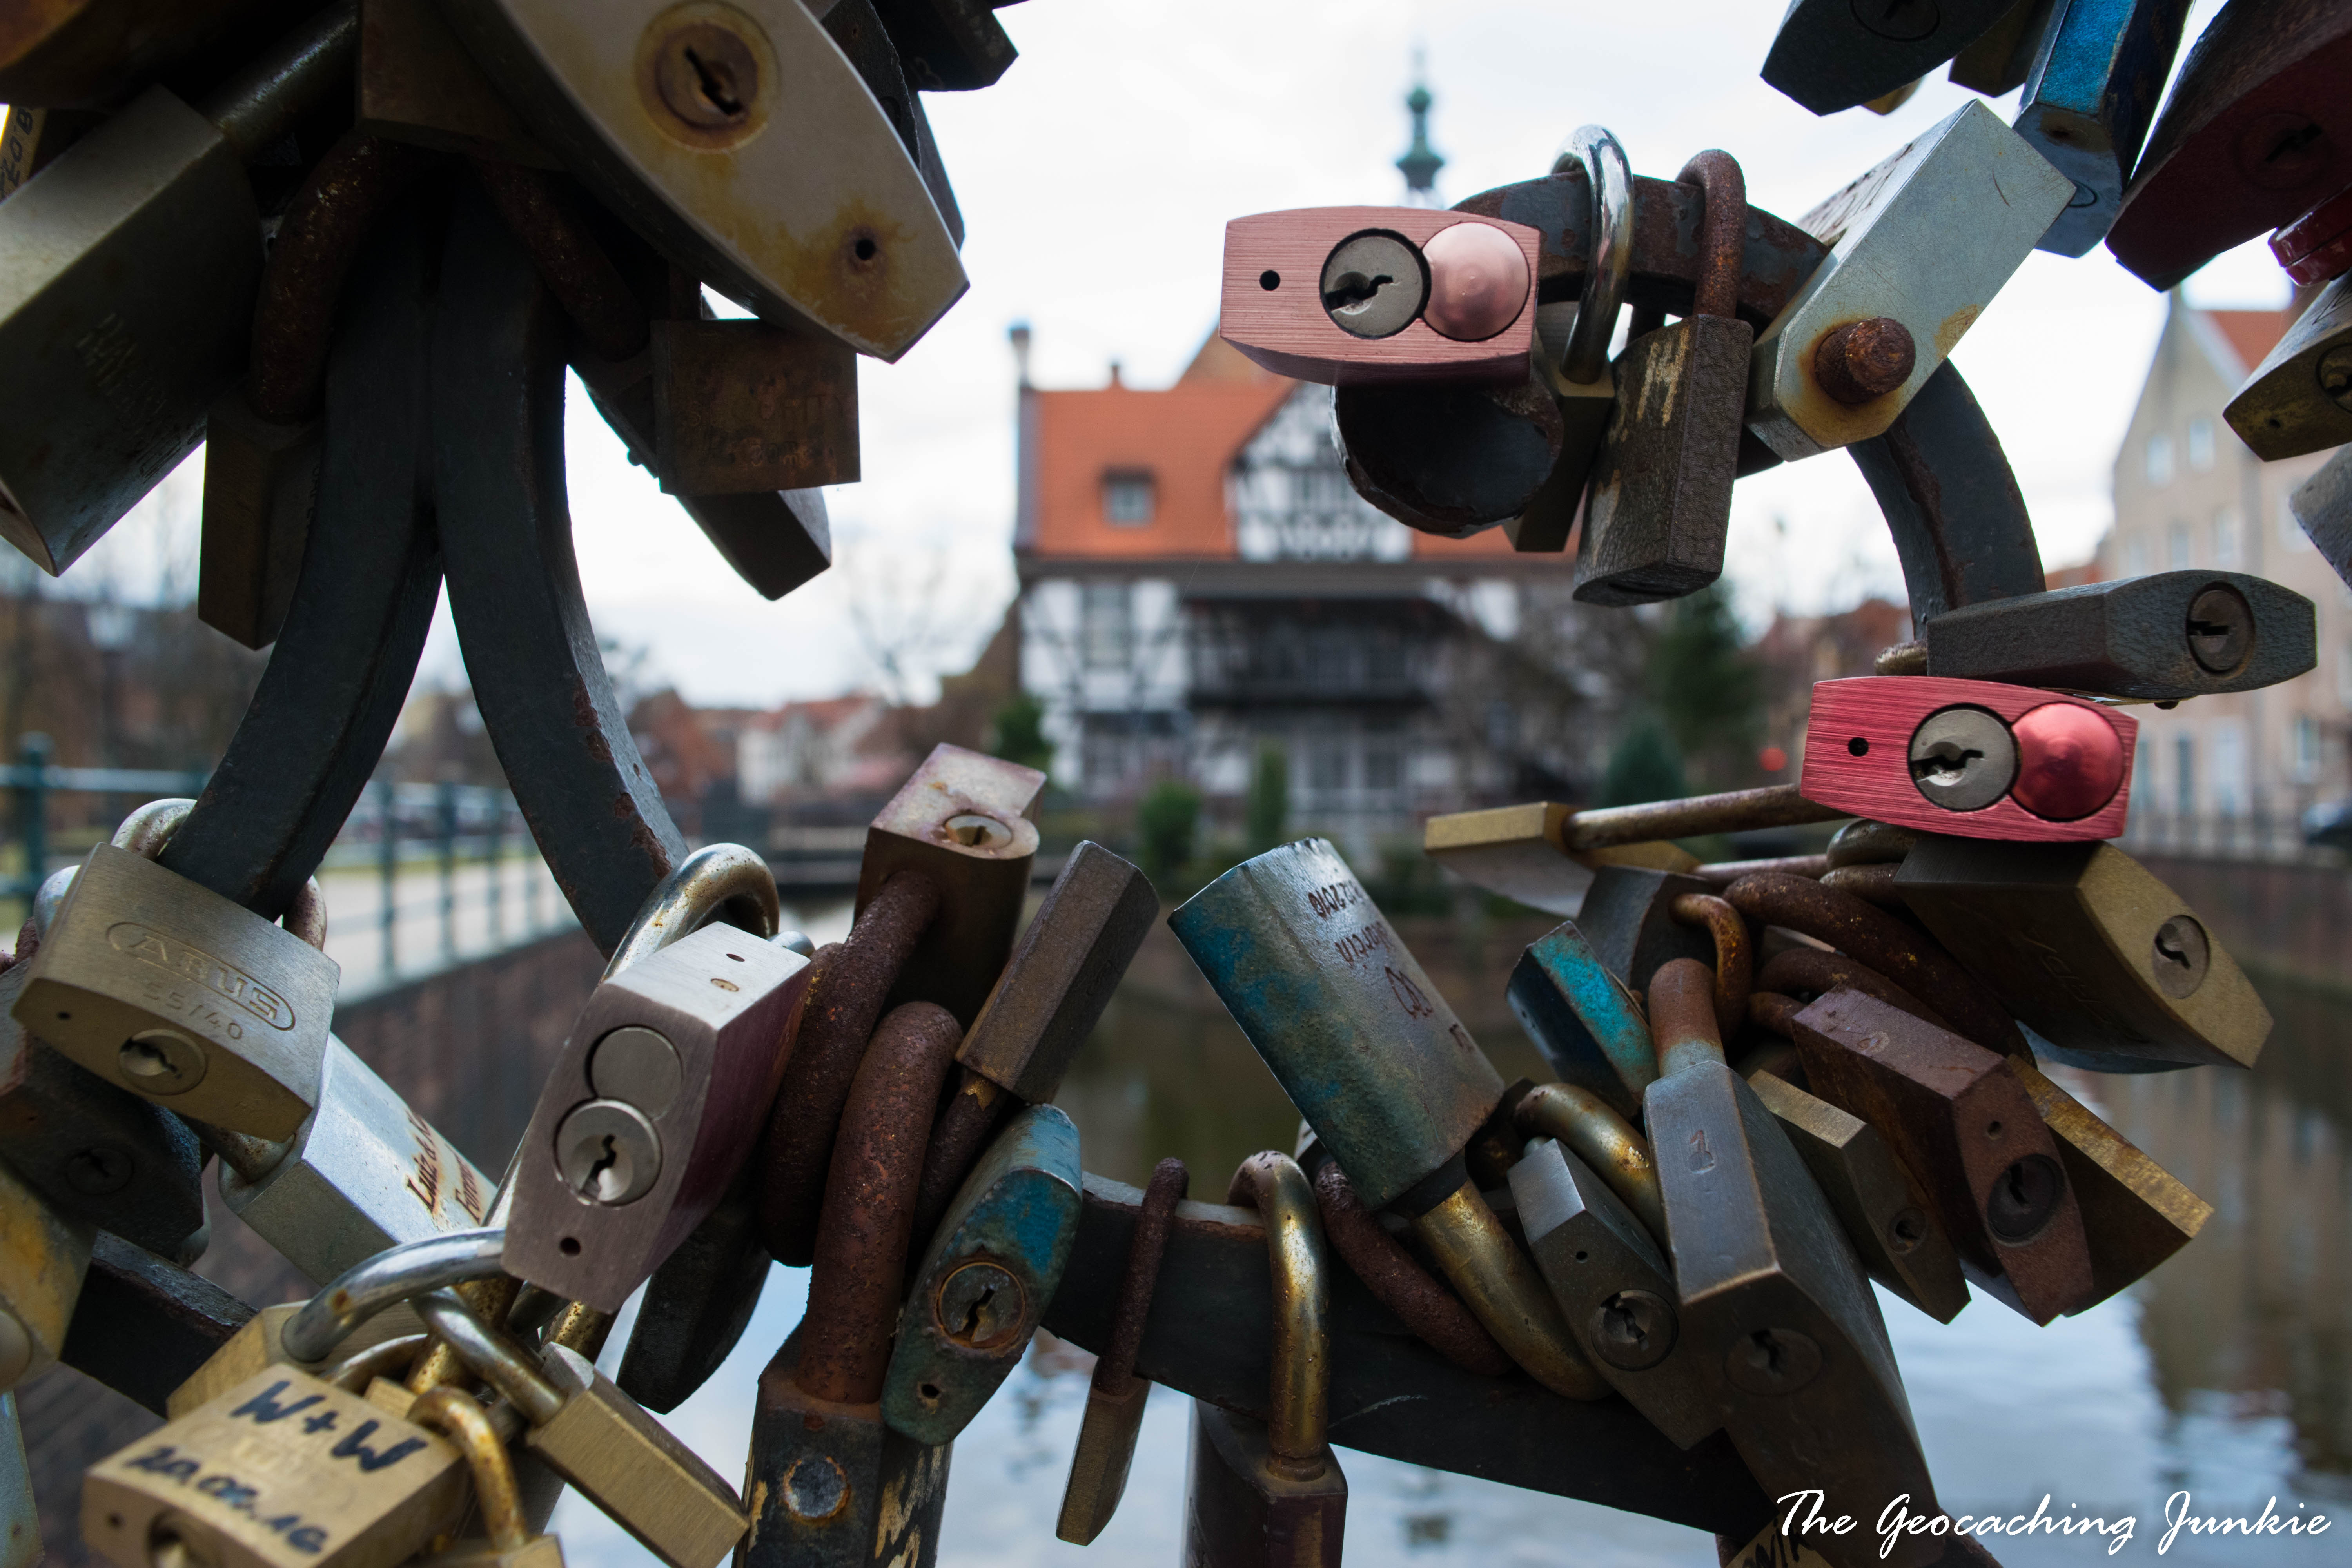 The Geocaching Junkie: Bridge of Love Gdansk Poland